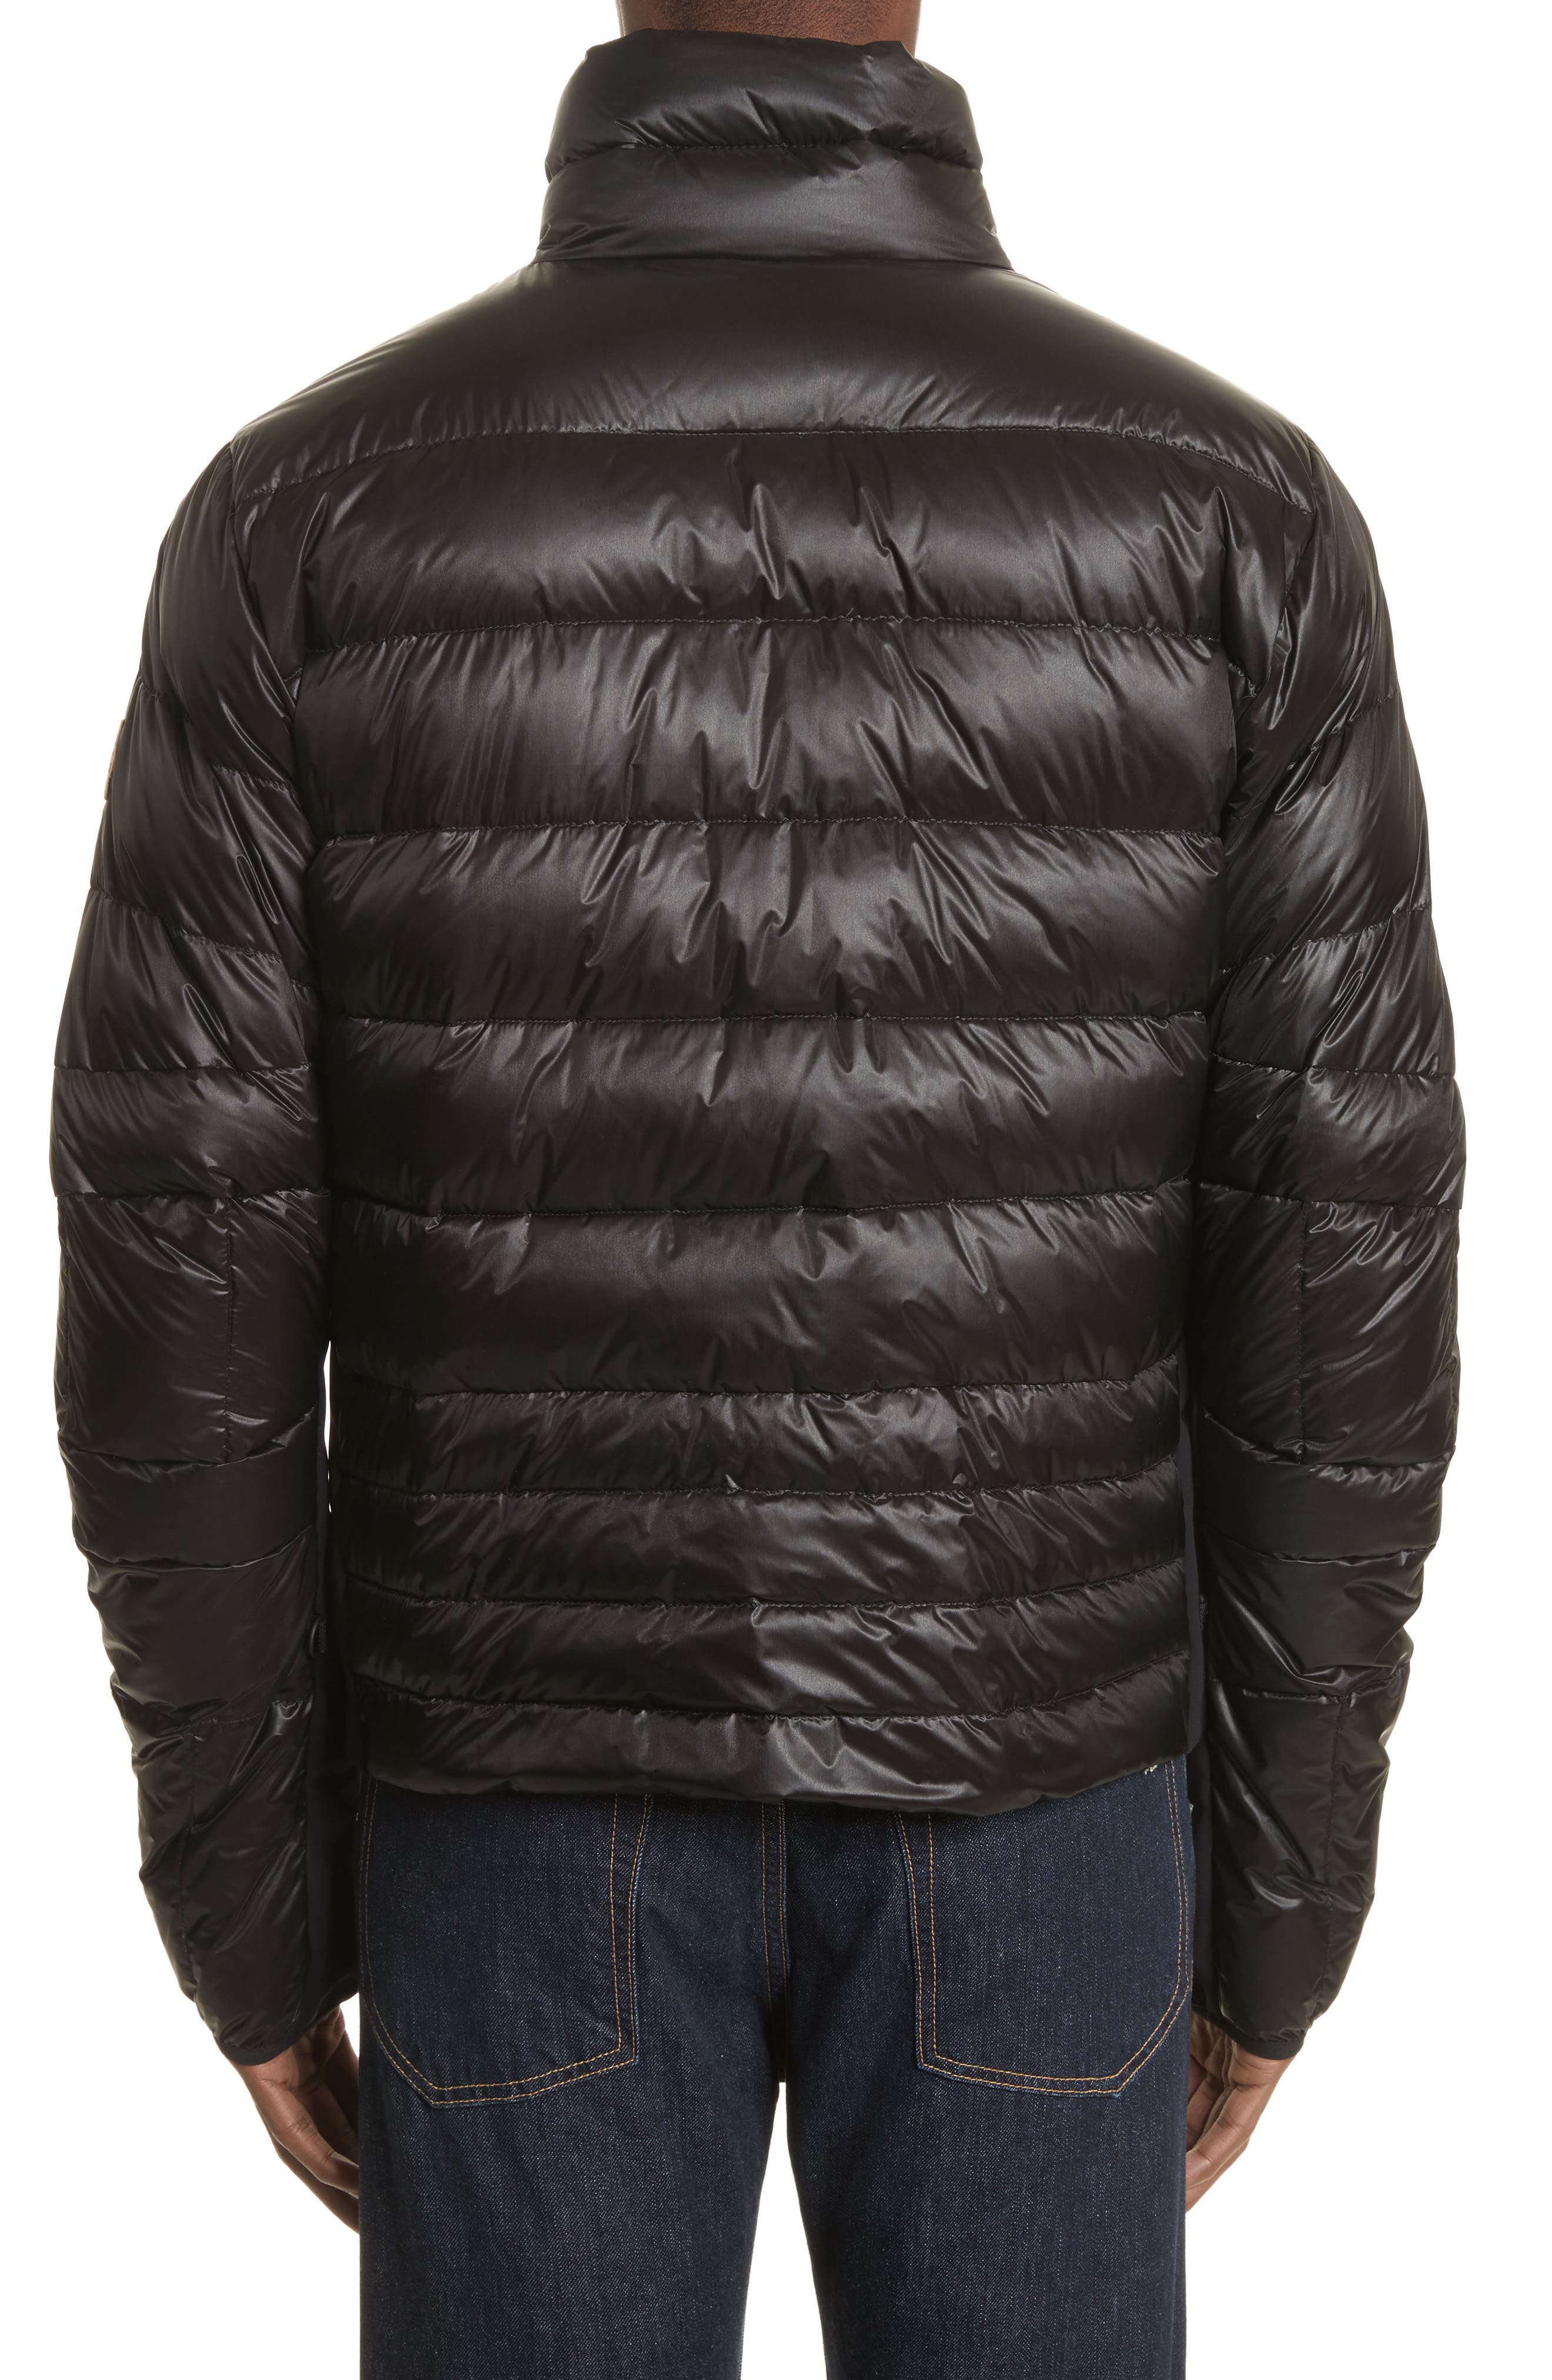 Grenoble Canmore Down Jacket,                             Alternate thumbnail 2, color,                             Black